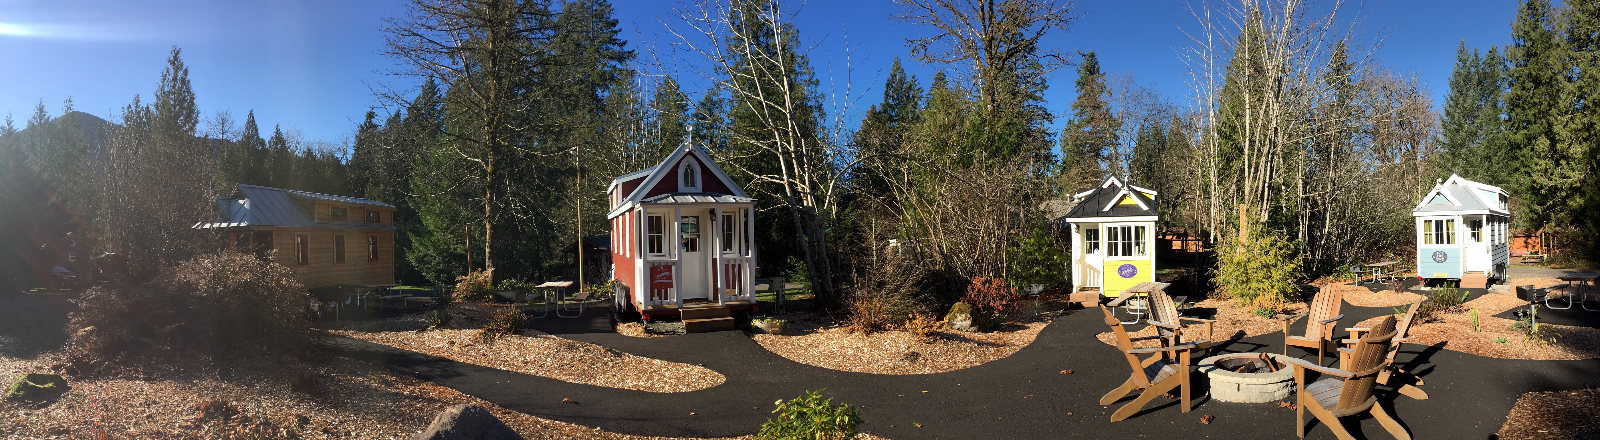 Panorama of four tiny house vacation rentals, and chairs around fire pit area at Mt. Hood Tiny House Village in Welches